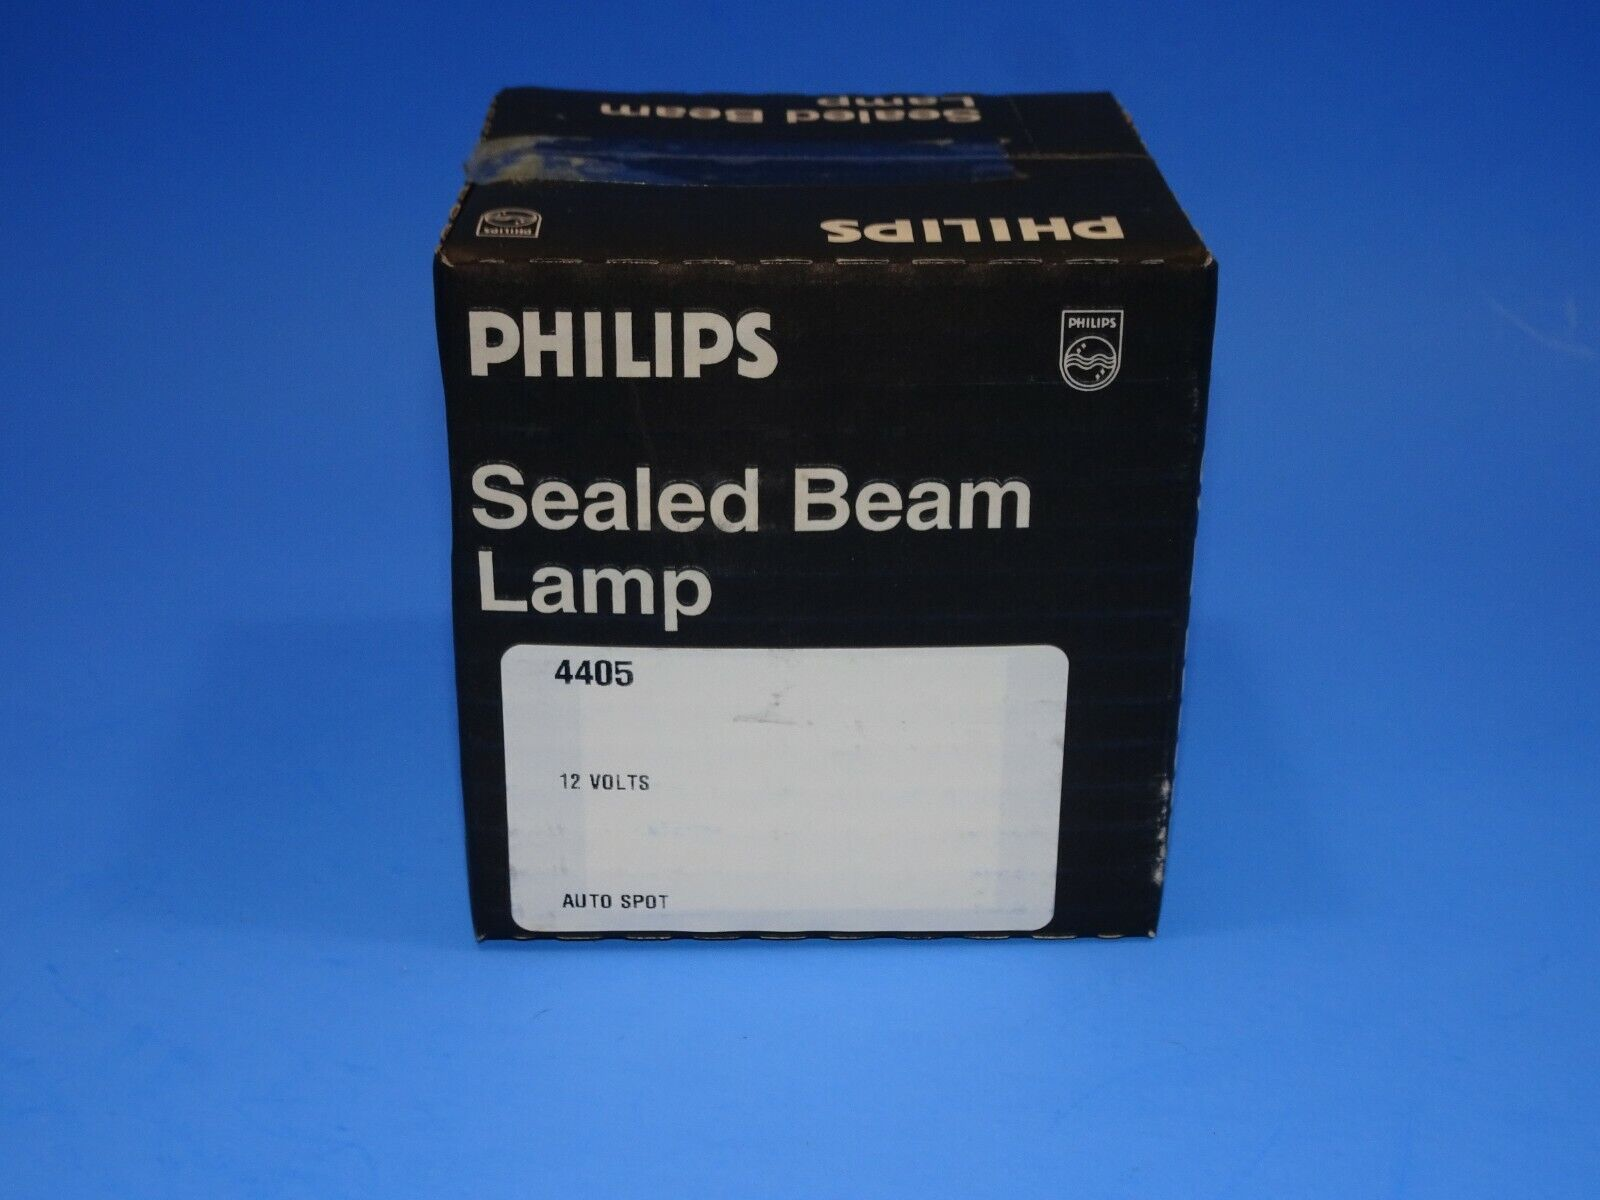 Philips 30w 12v Beam Lamp 4405 Par 36 Made in USA for sale online